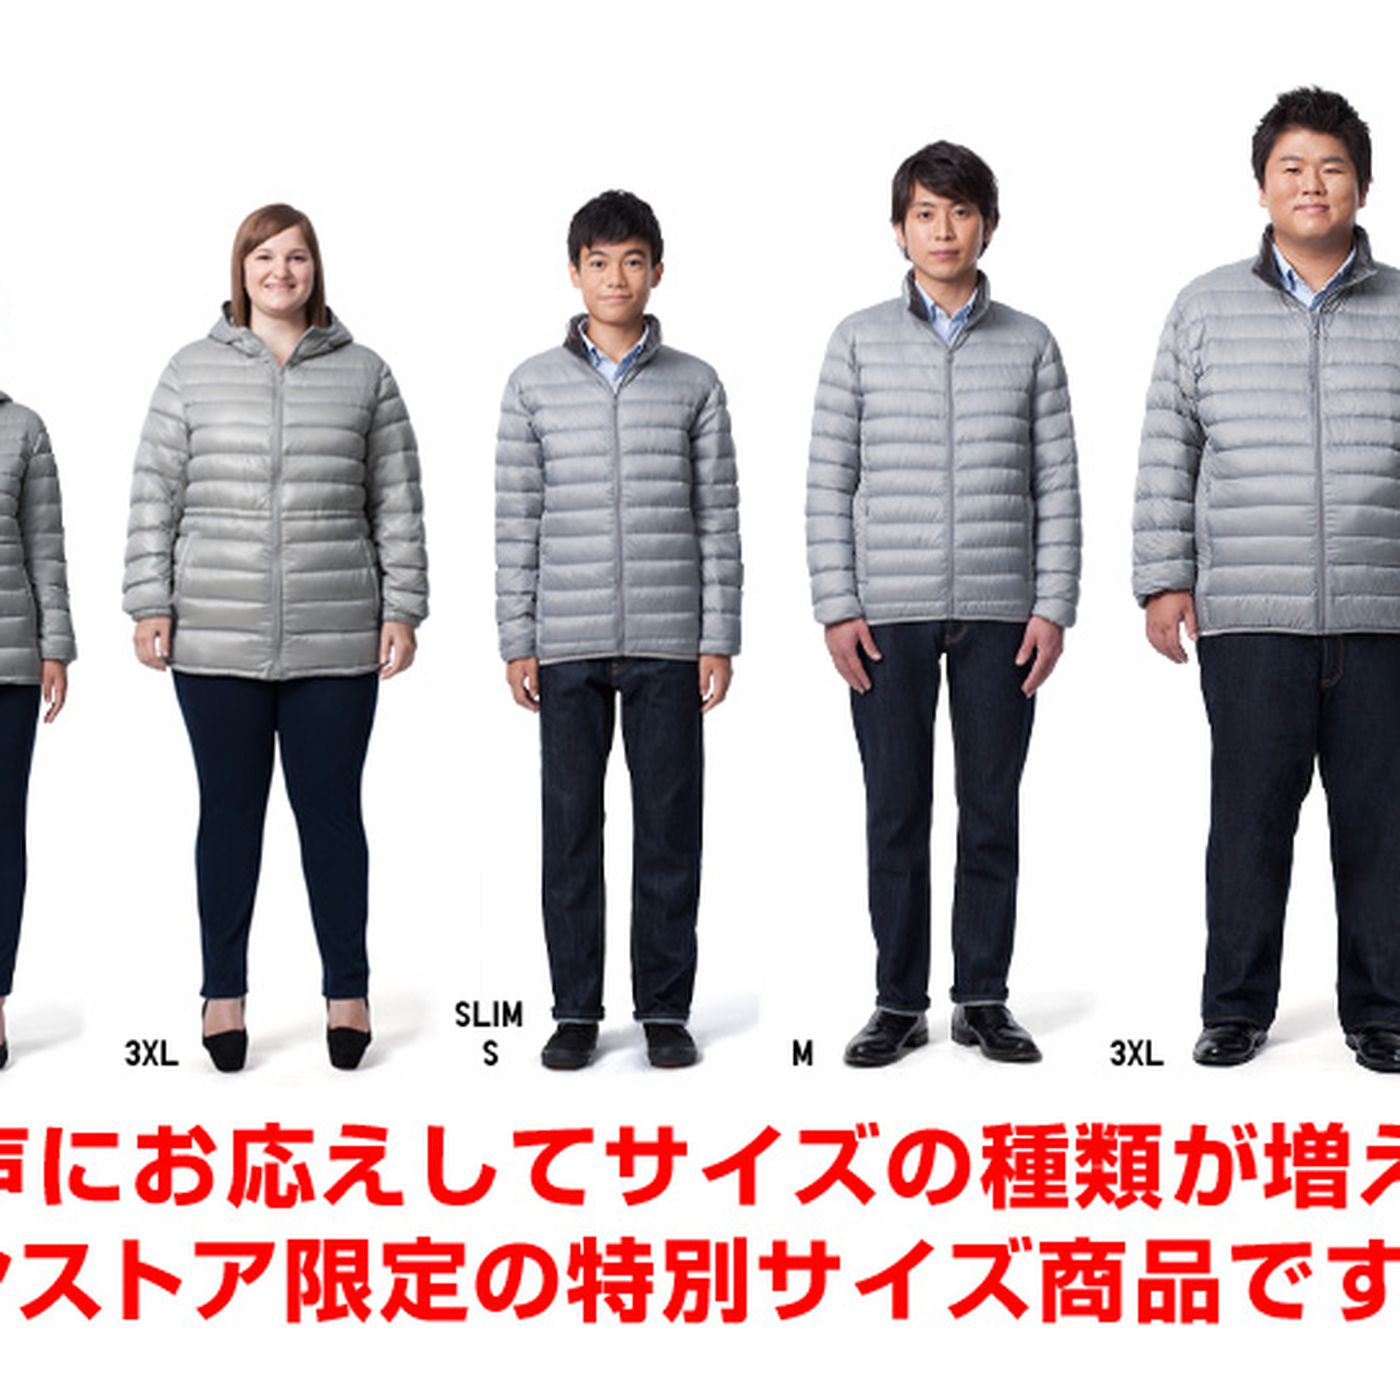 05a2dc415 Uniqlo to Offer Larger Sizes in the US - Racked